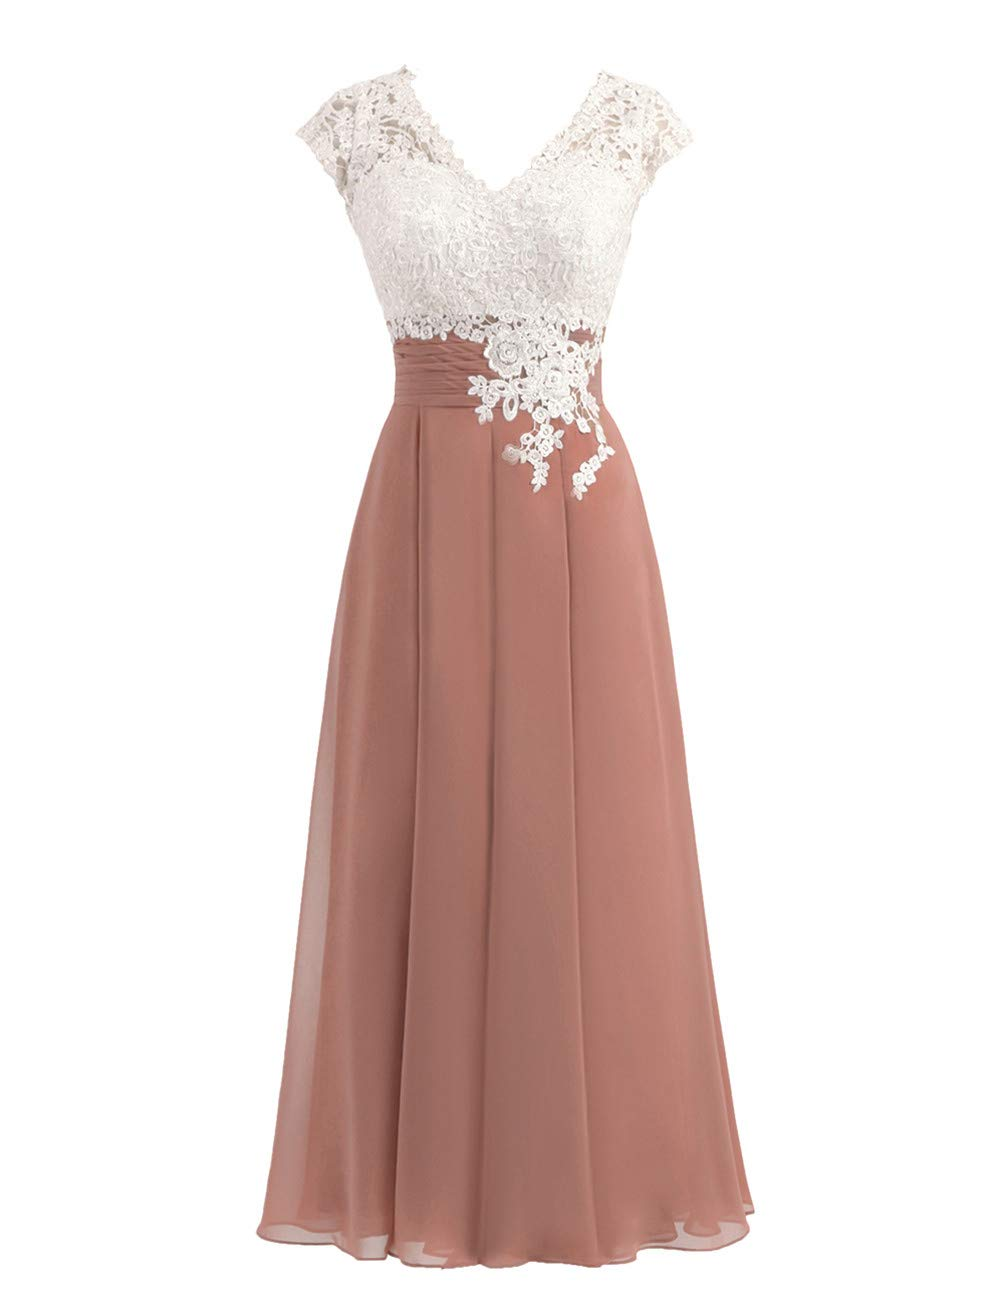 580173e41a8 Women s Ivory Lace Top Chiffon Button V-Neck Bridesmaid Dresses with Cap  Sleeves Mother of The Bride Dresses (US12